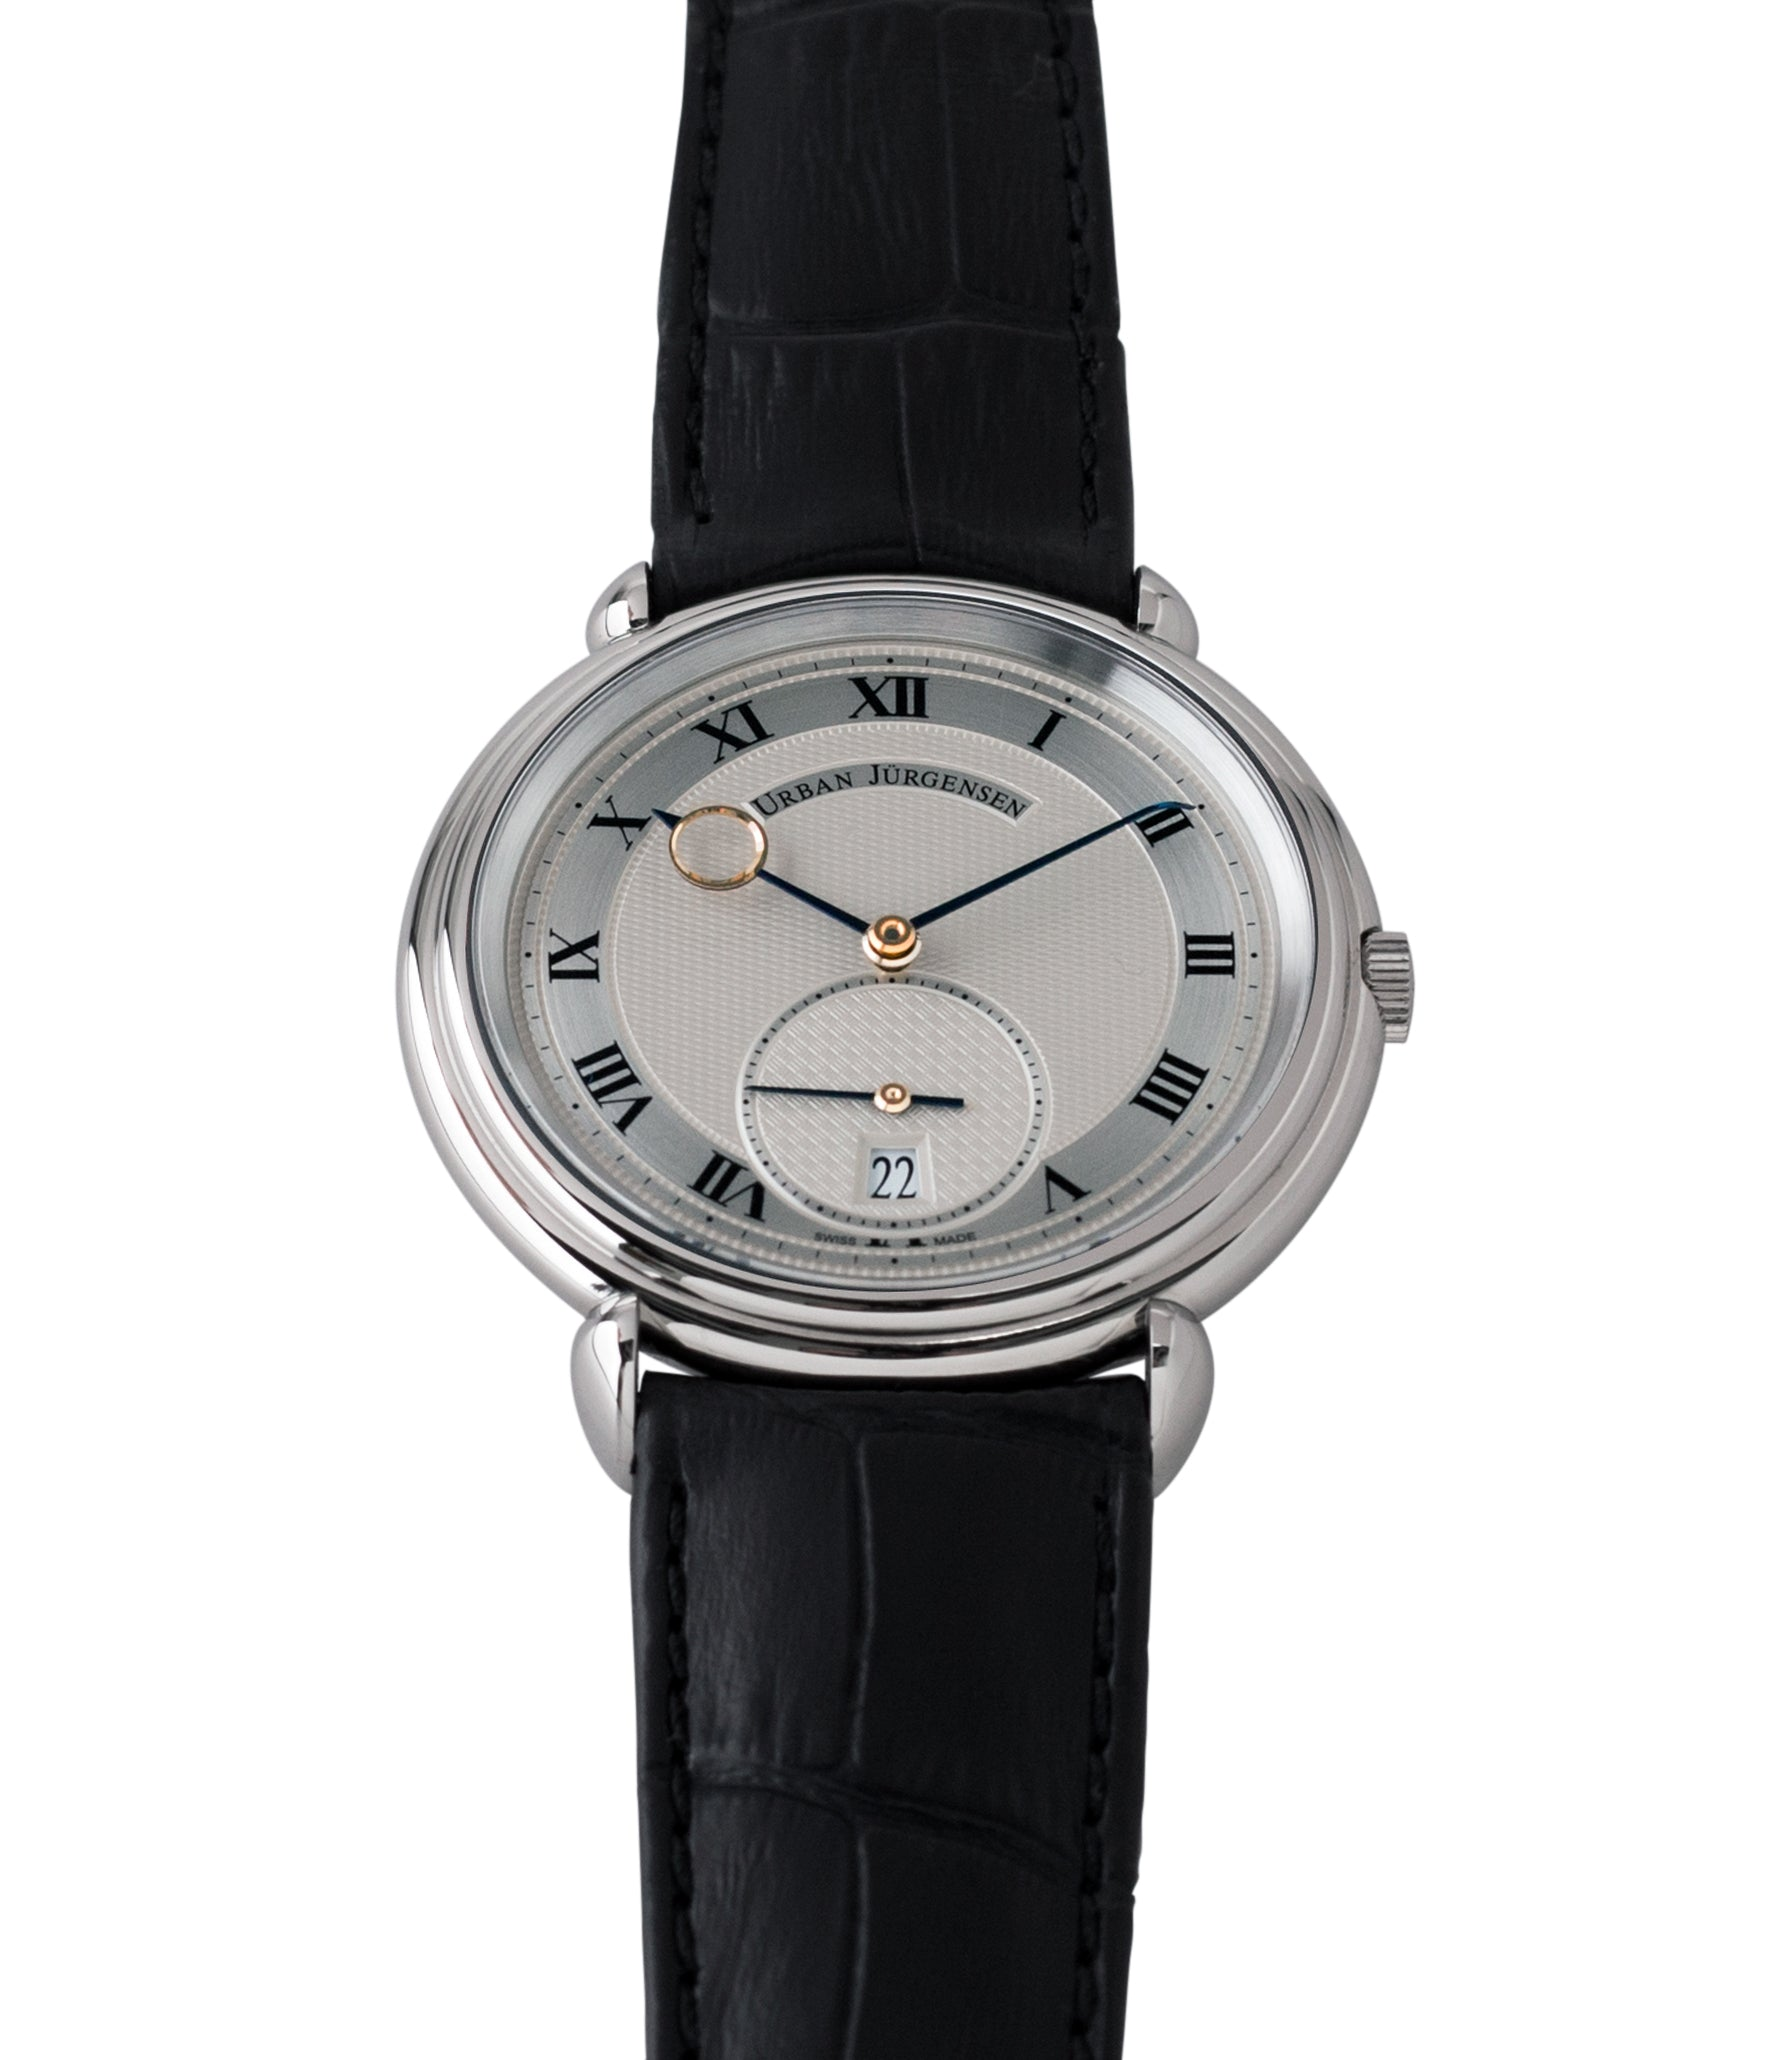 gent's dress watch Urban Jurgensen Big8 steel watch online at A Collected Man London specialist retailer of independent watchamkers